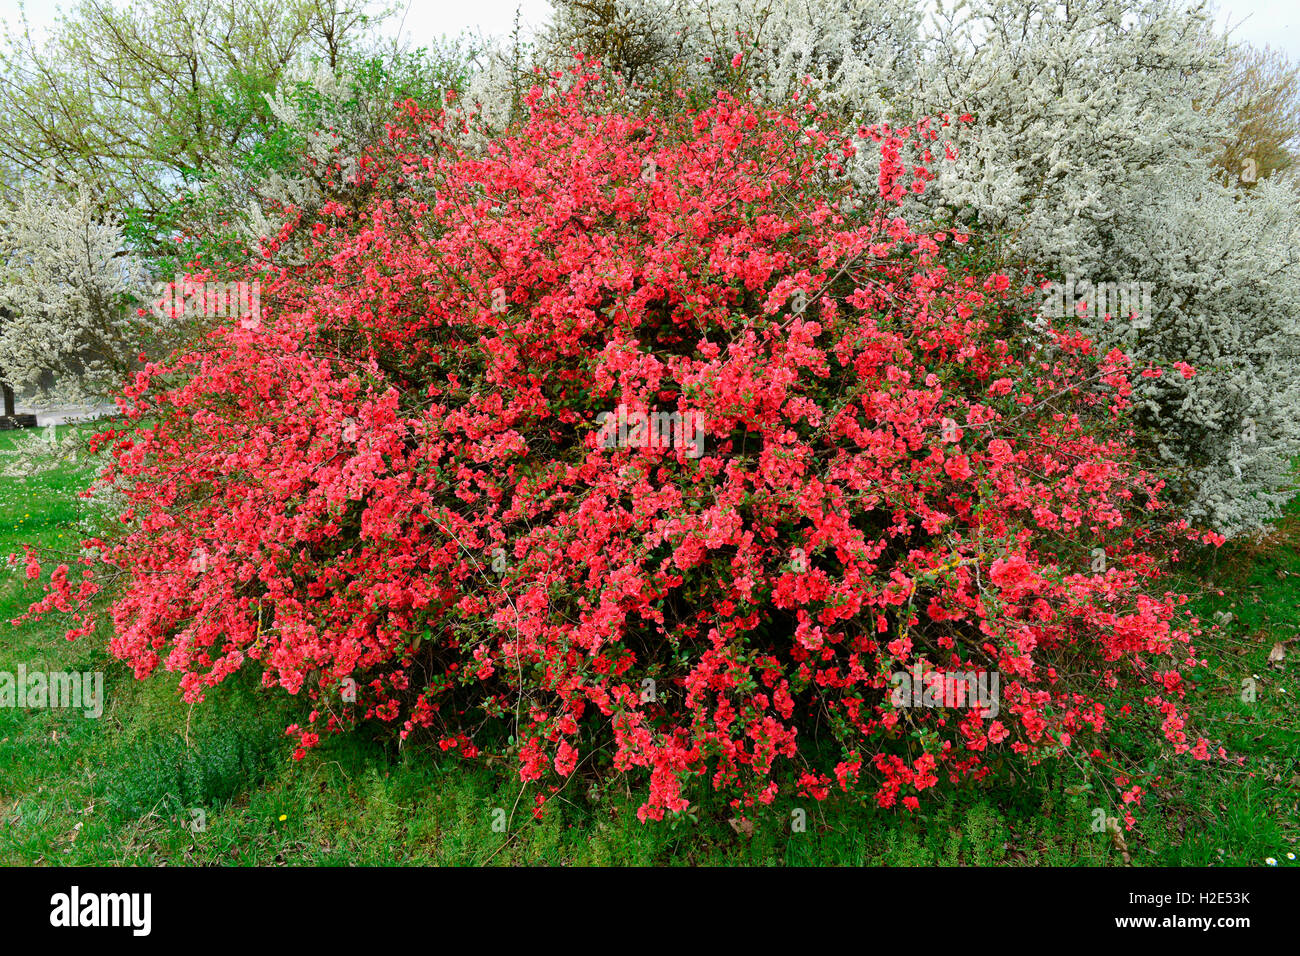 japanese quince chaenomeles japonica flowering bush germany stock photo 122013239 alamy. Black Bedroom Furniture Sets. Home Design Ideas